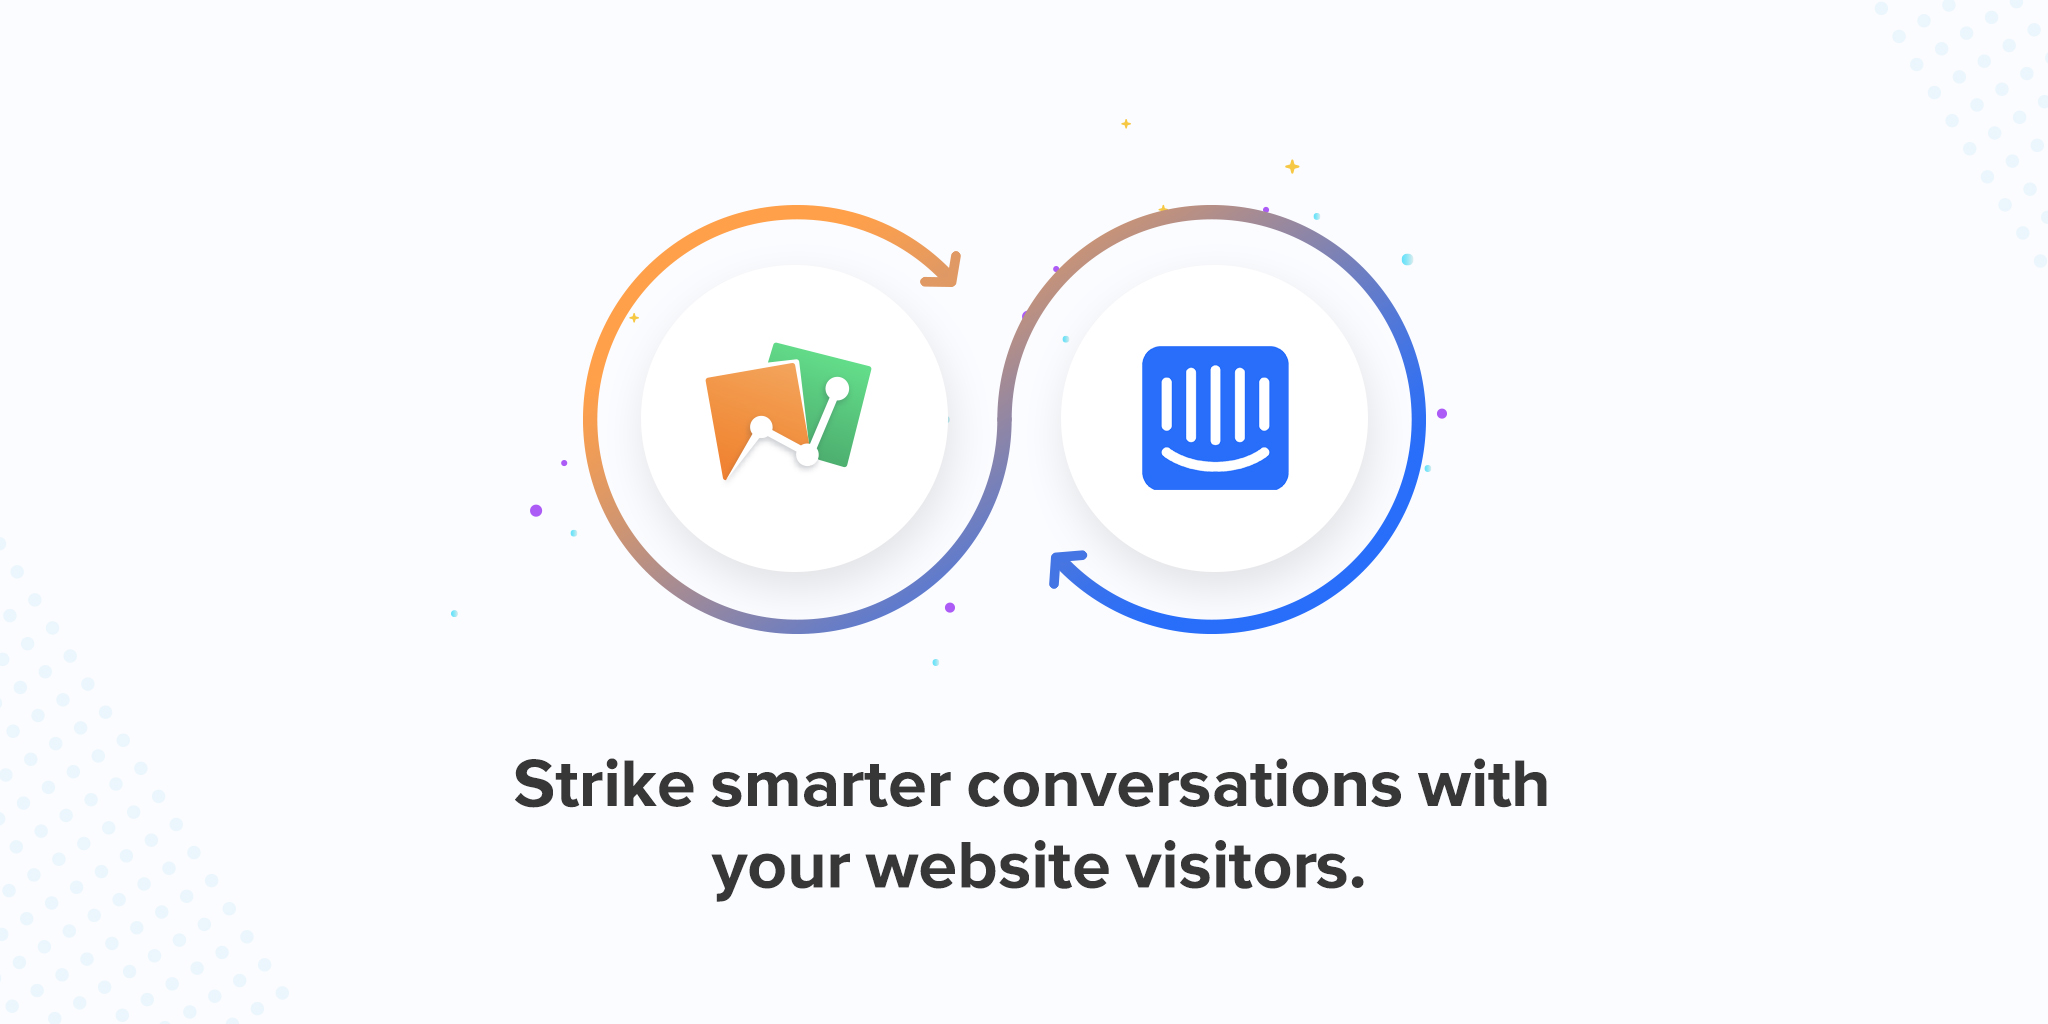 Zoho PageSense + Intercom—add context to your conversations